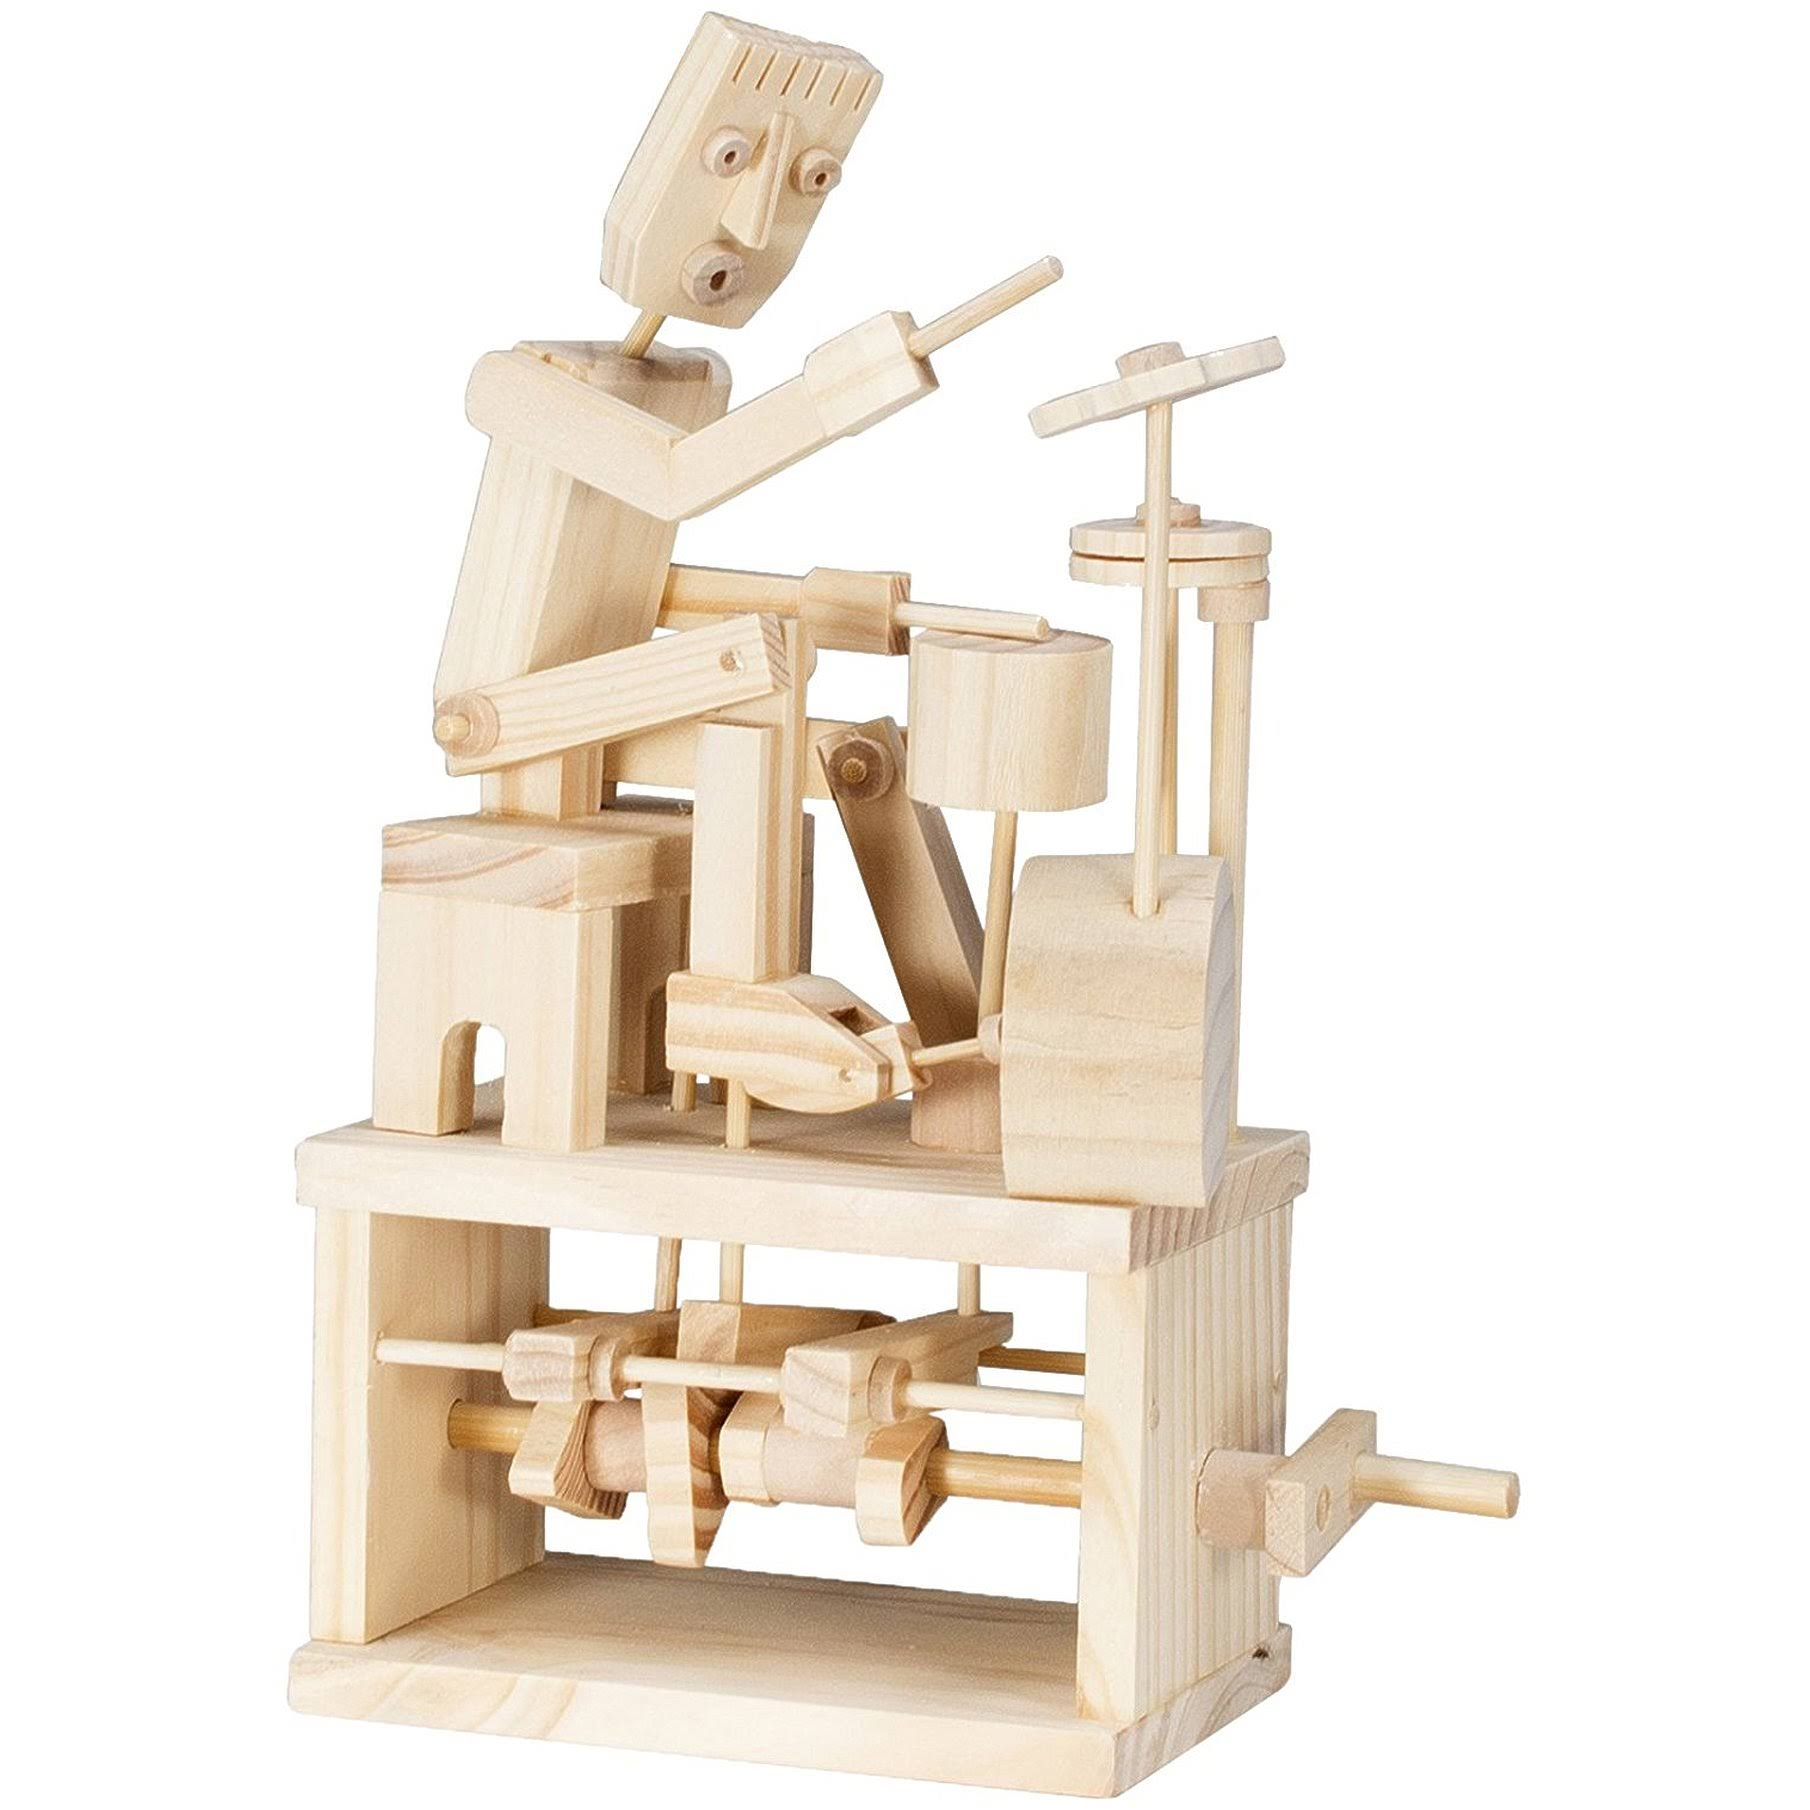 Timberkits - Drummer - Mechanical Wooden Construction Kit